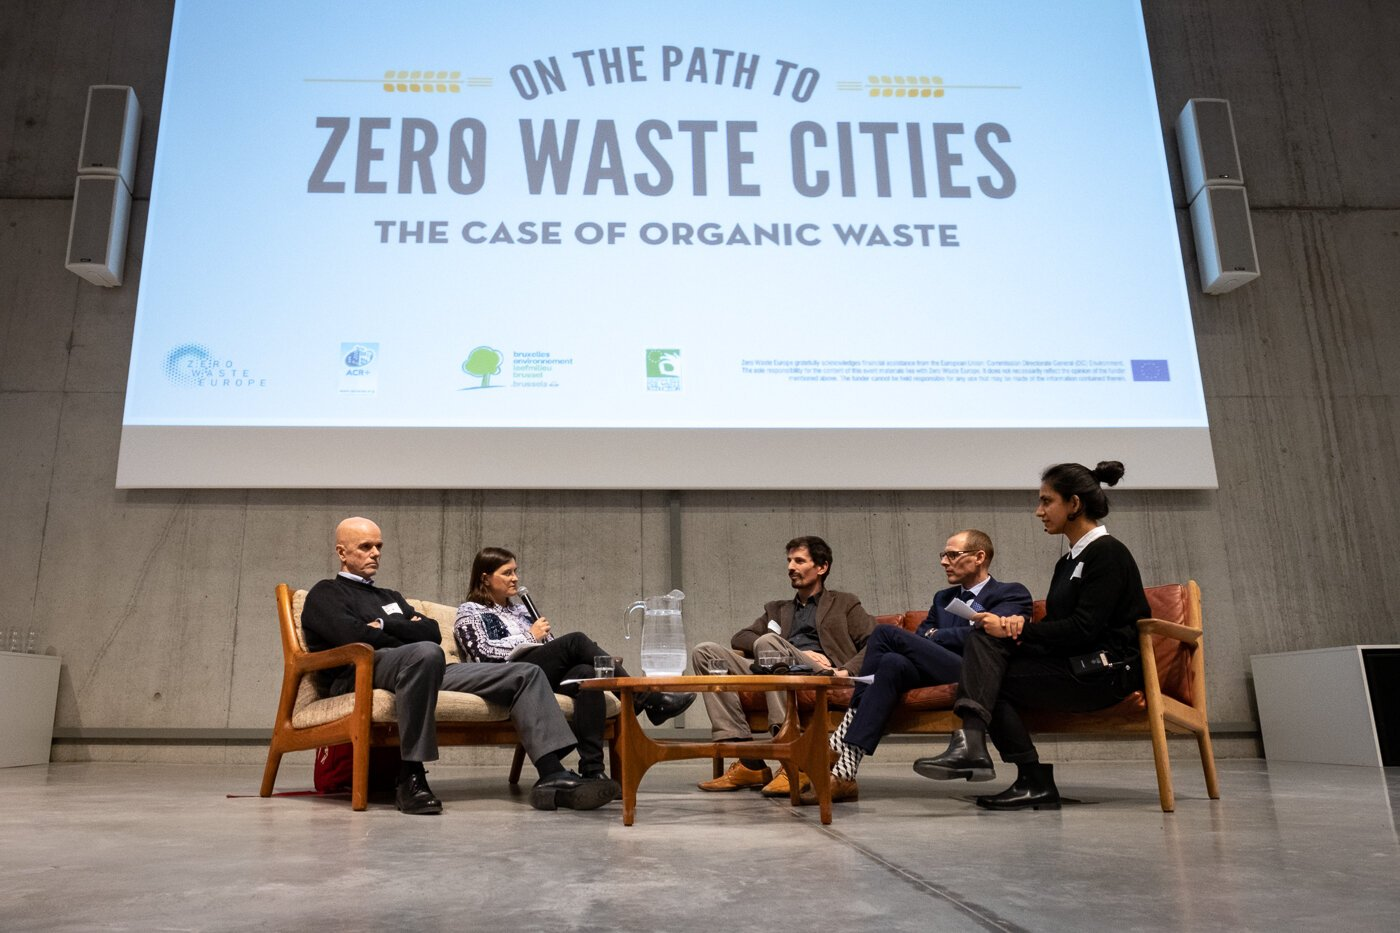 Zero Waste Cities conference, Brussels, 2018. Photo credit: Zero Waste Europe